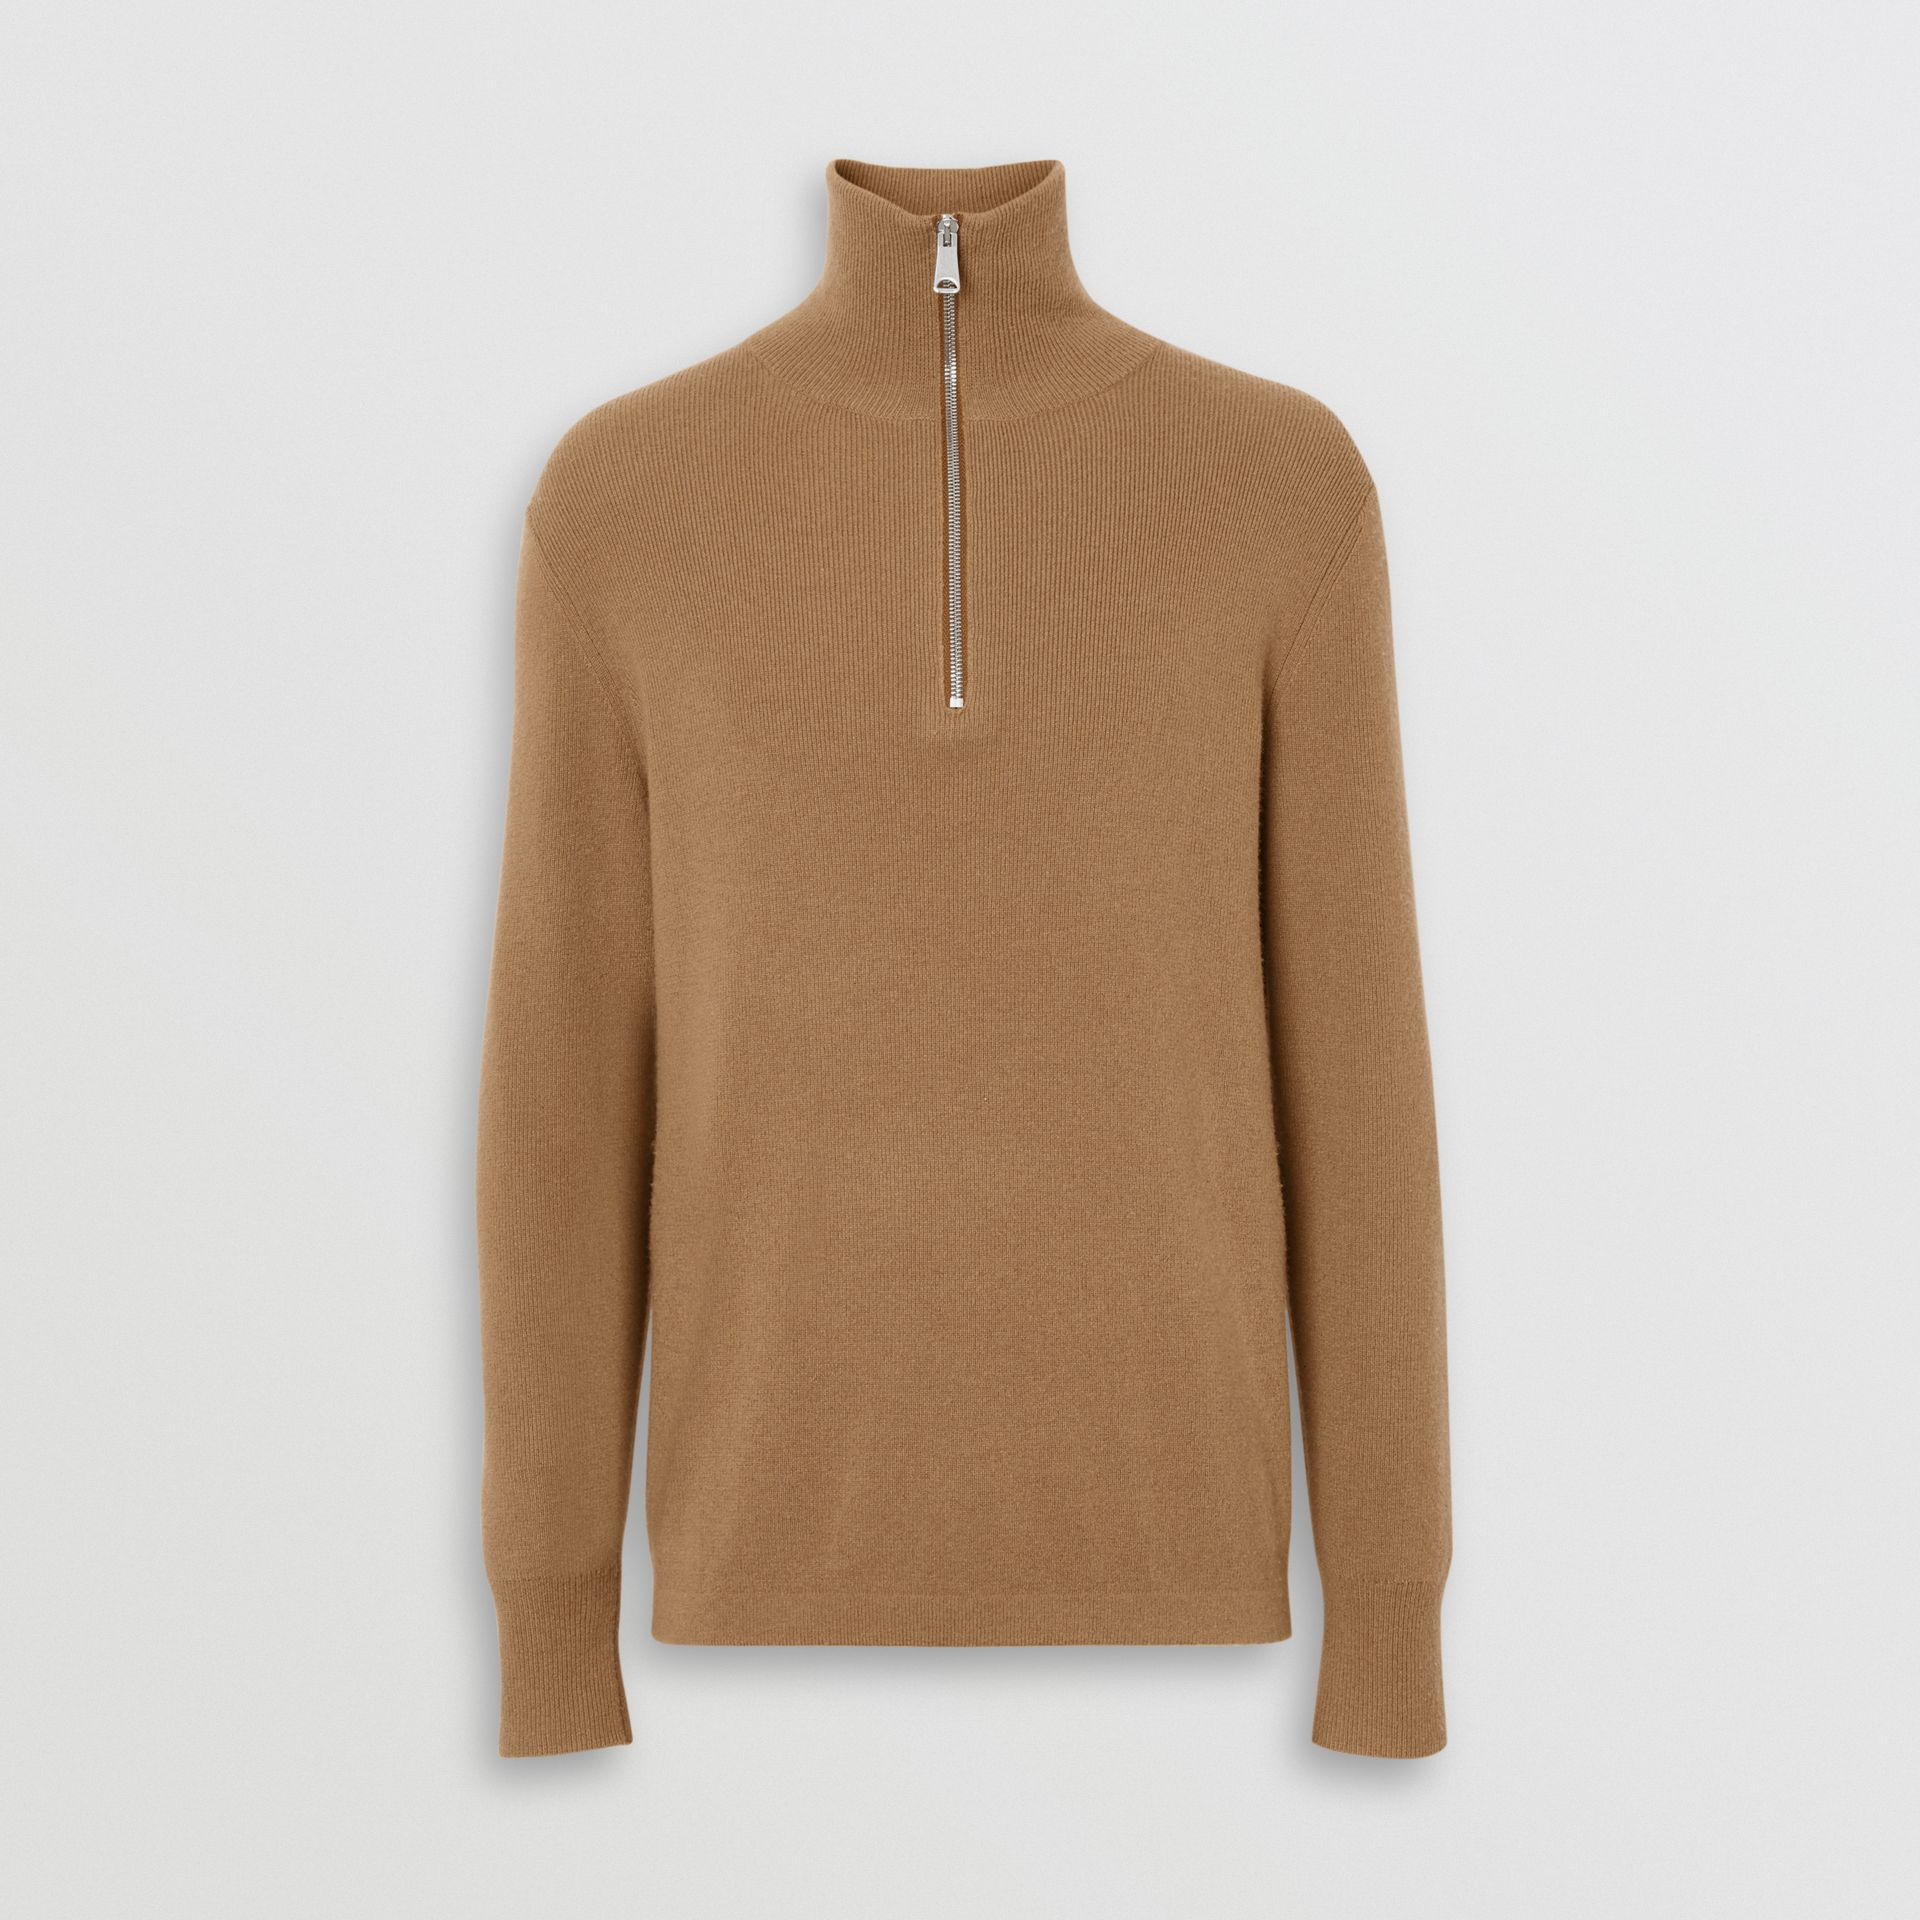 Rib Knit Cashmere Half-zip Sweater in Camel - Men | Burberry United Kingdom - gallery image 3